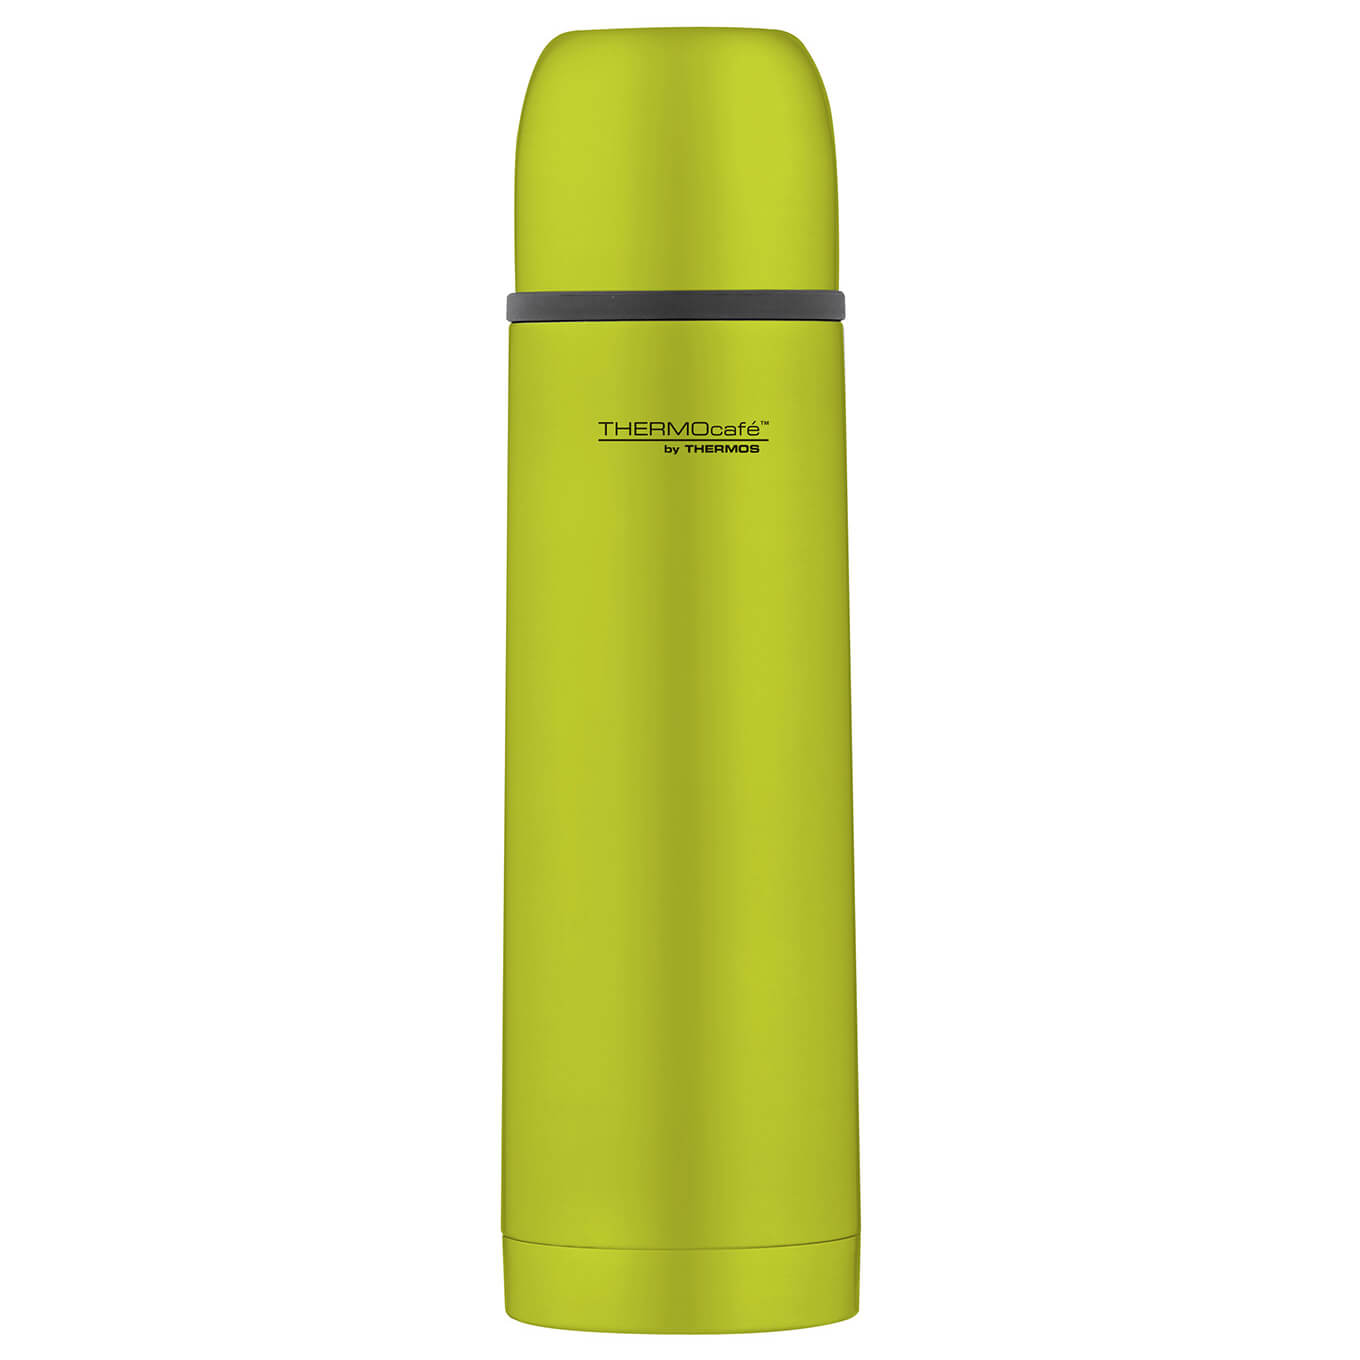 Thermos thermocafe everyday edelstahl isolierflasche for Thermos caffe